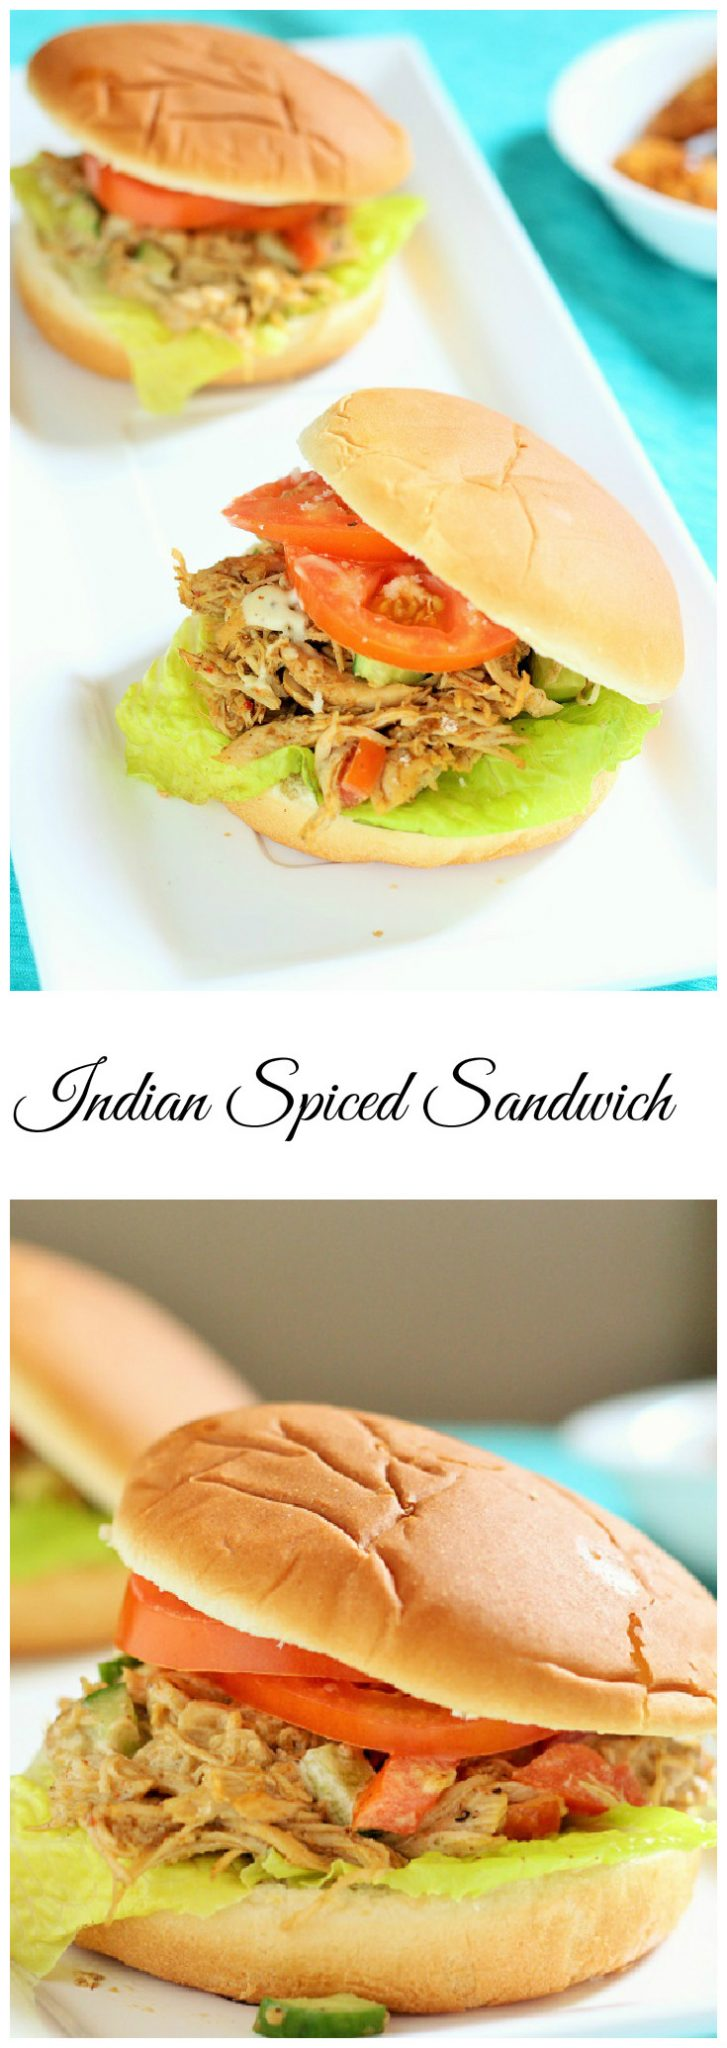 Indian Spiced Shredded Chicken Sandwich